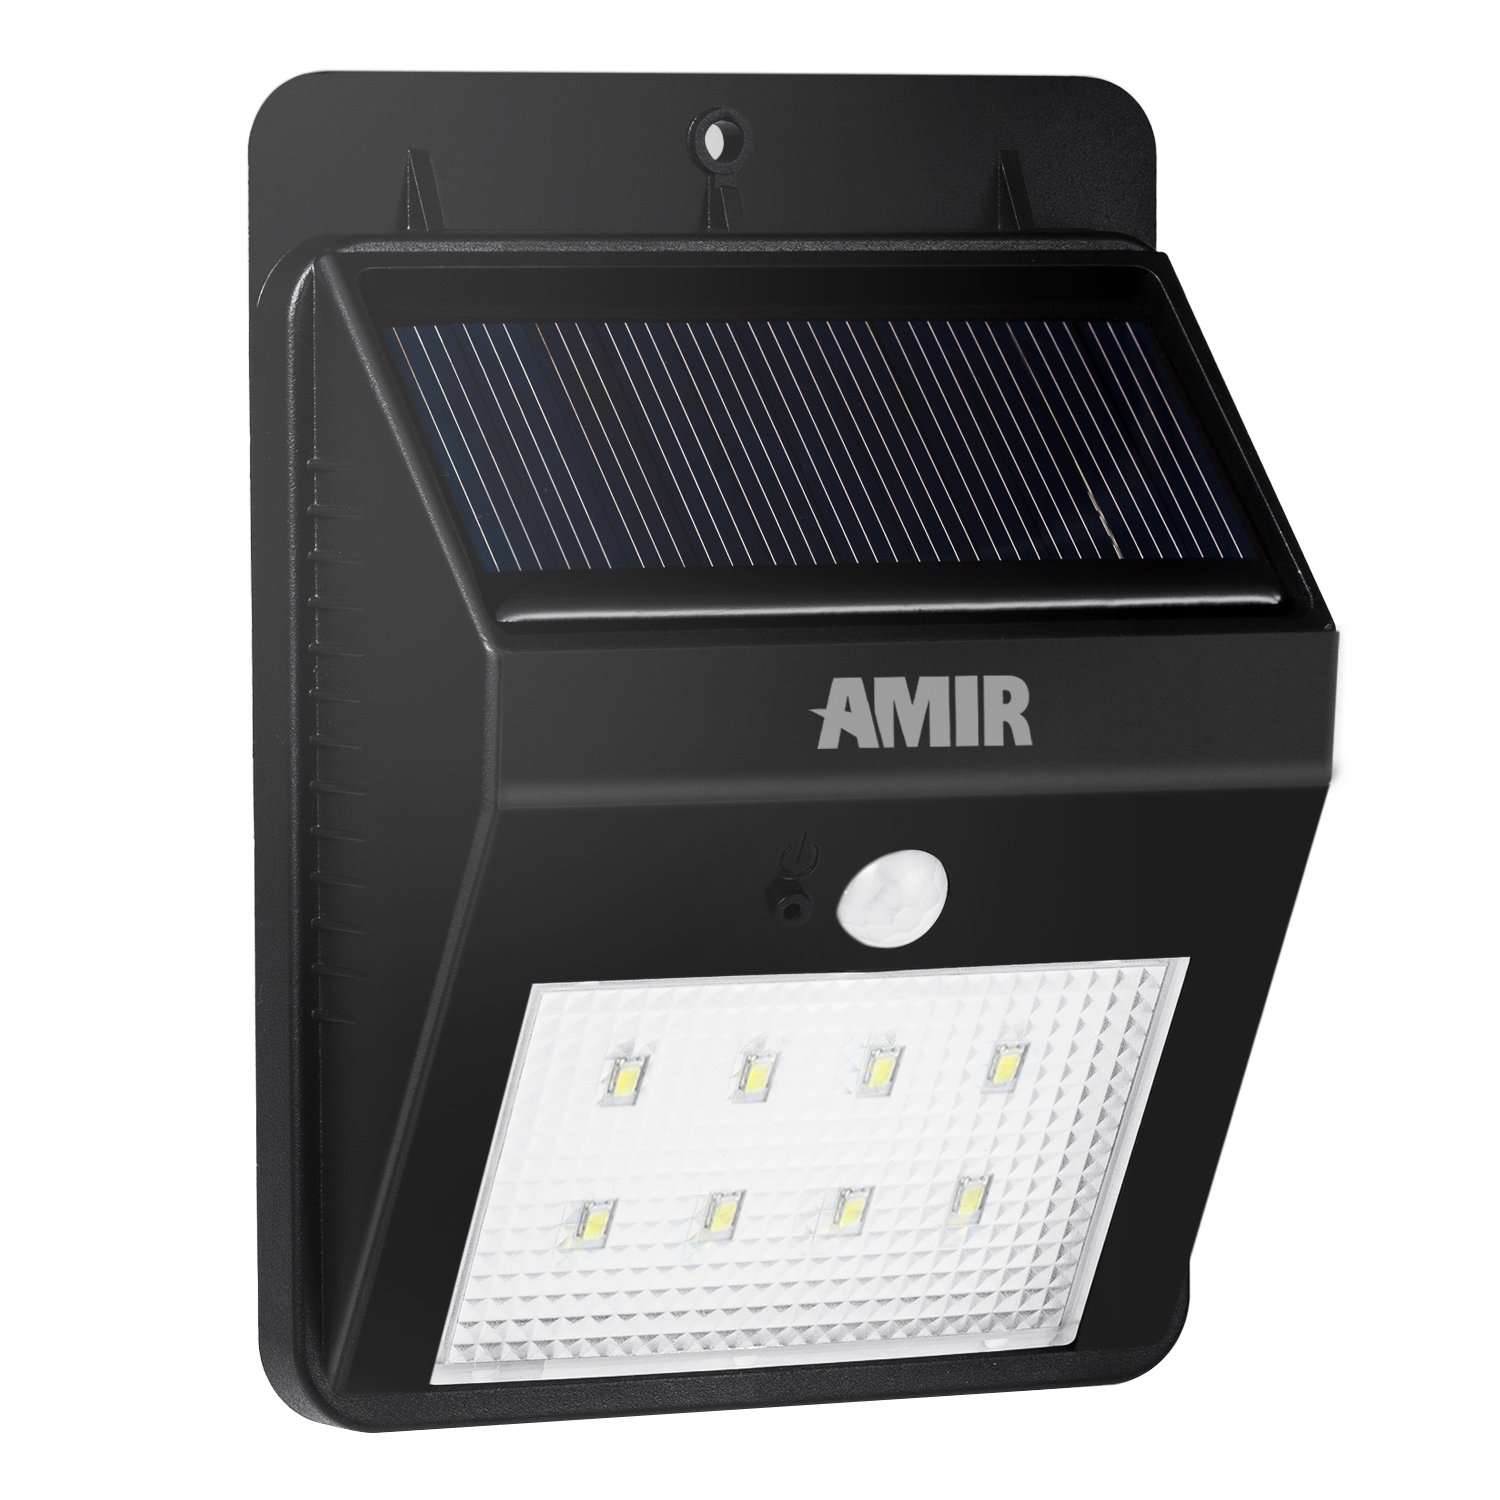 AMIR Solar Lights, Easter lights, LED Wireless Solar Powered Motion Sensor Light, Garden/ Outdoor Solar Energy Welcome Wall Lights, with 8 Bright LED for Patio, Deck, Yard, Garden, Home UK-LT3